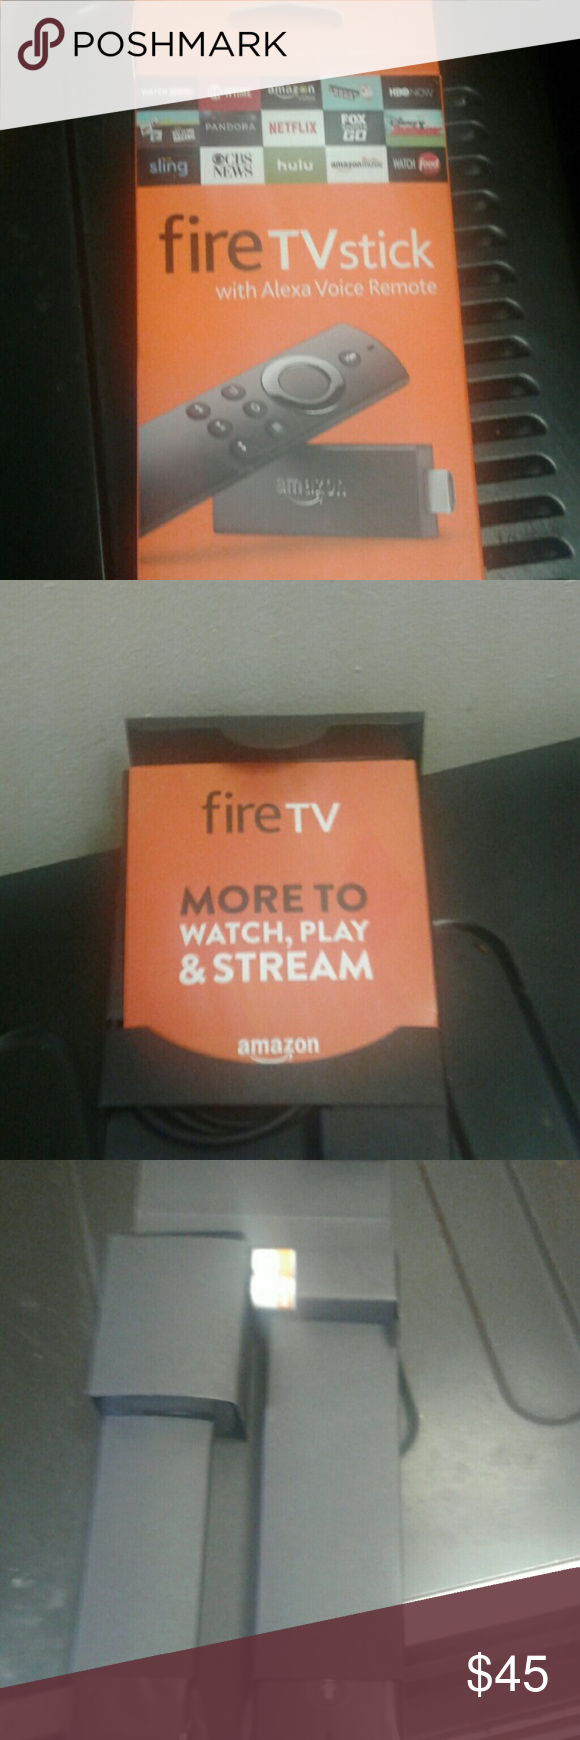 FIRE TV STICK WITH ALEXA REMOTE FIRESTICK Other